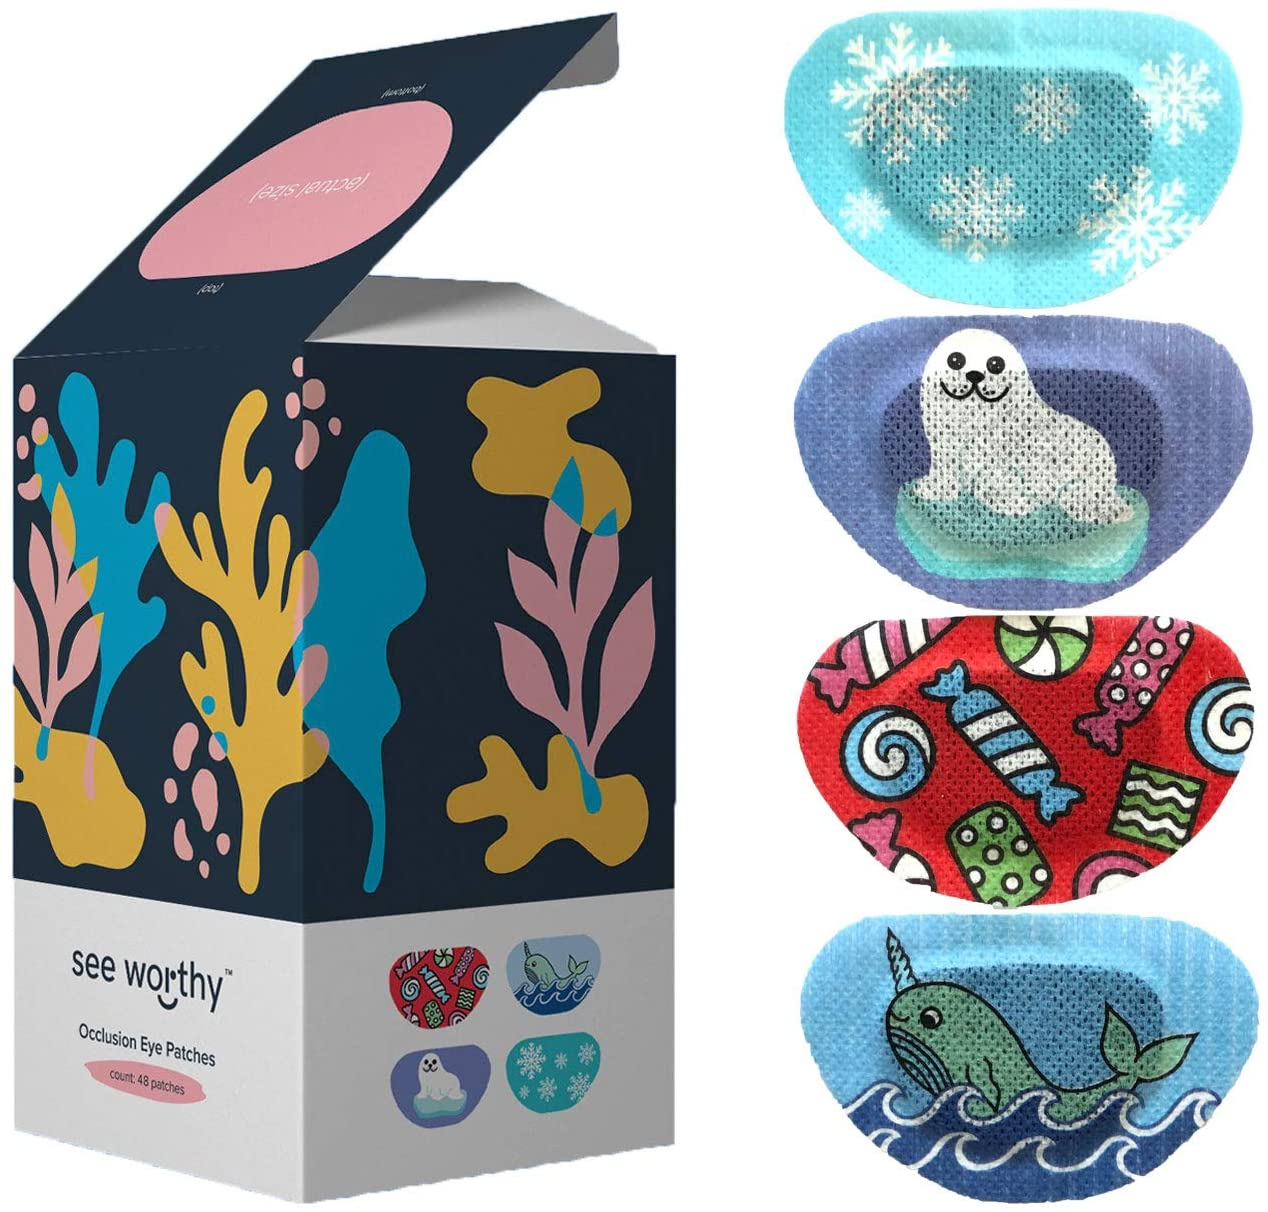 See Worthy Winter Eye Patches, Innovative Shape, Smart Adhesive Technology, Breathable Material and Fun Designs, (48 per Box) (Regular Size)